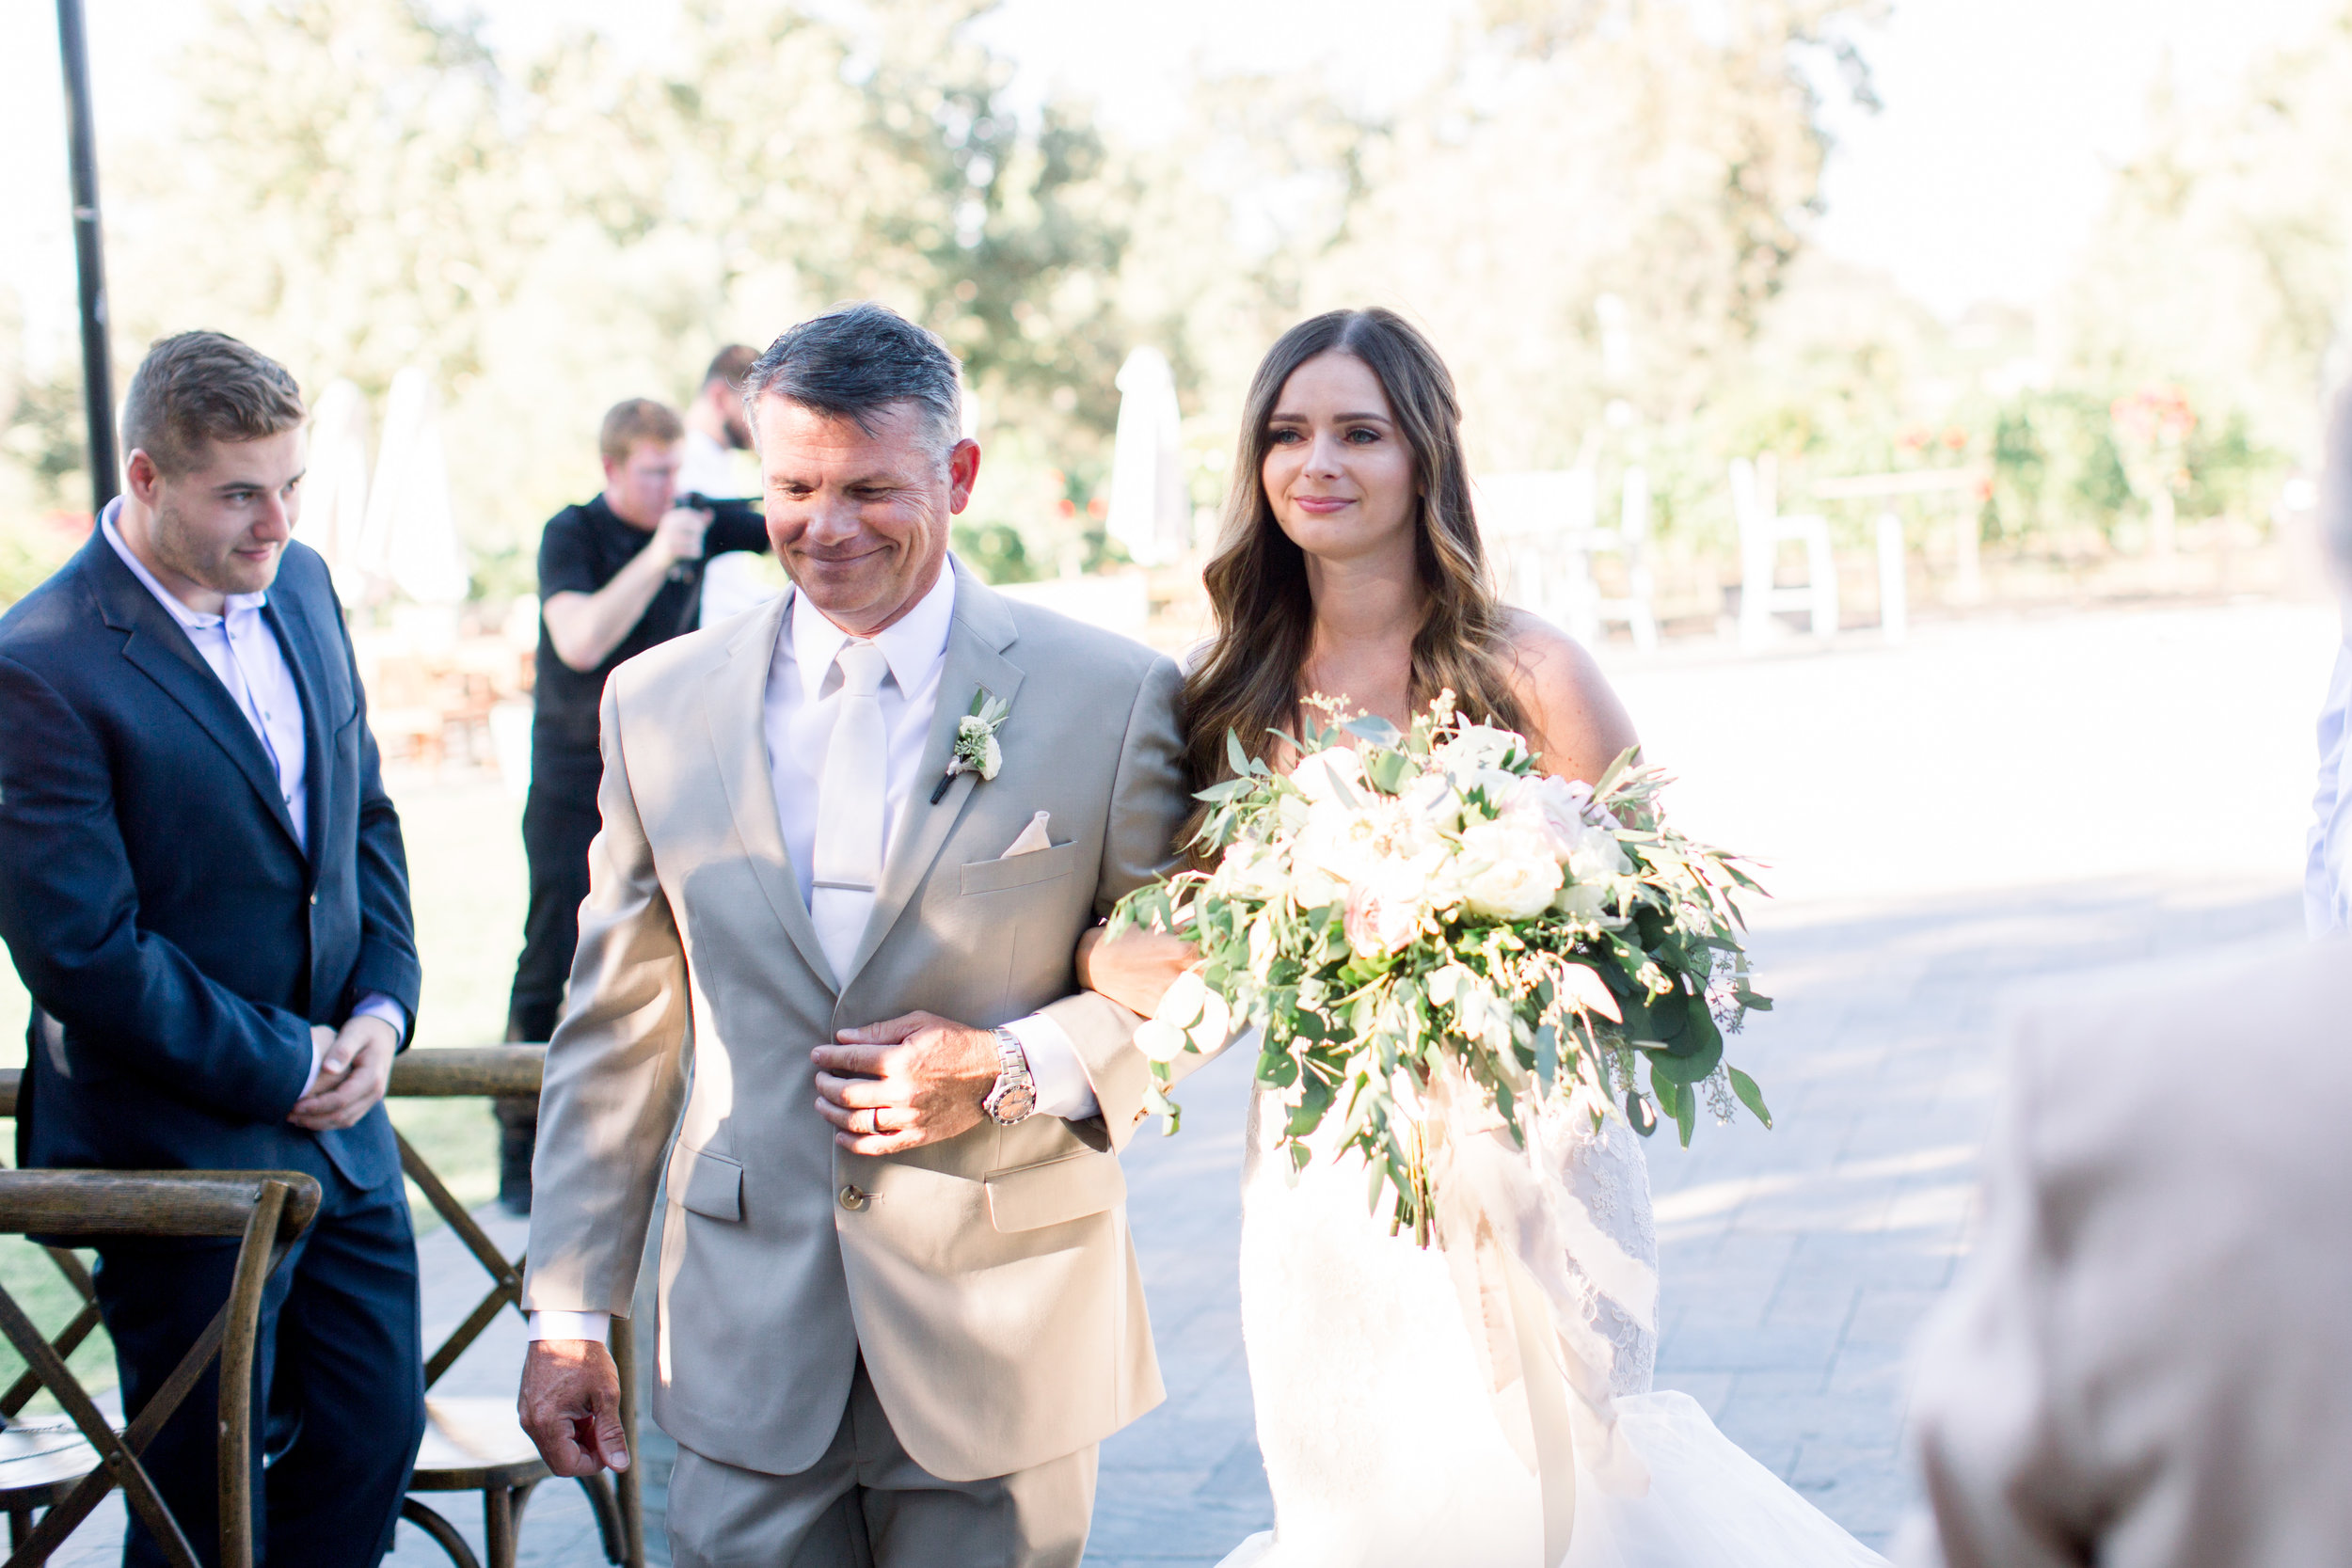 muriettas-well-wedding-in-livermore-california-21.jpg